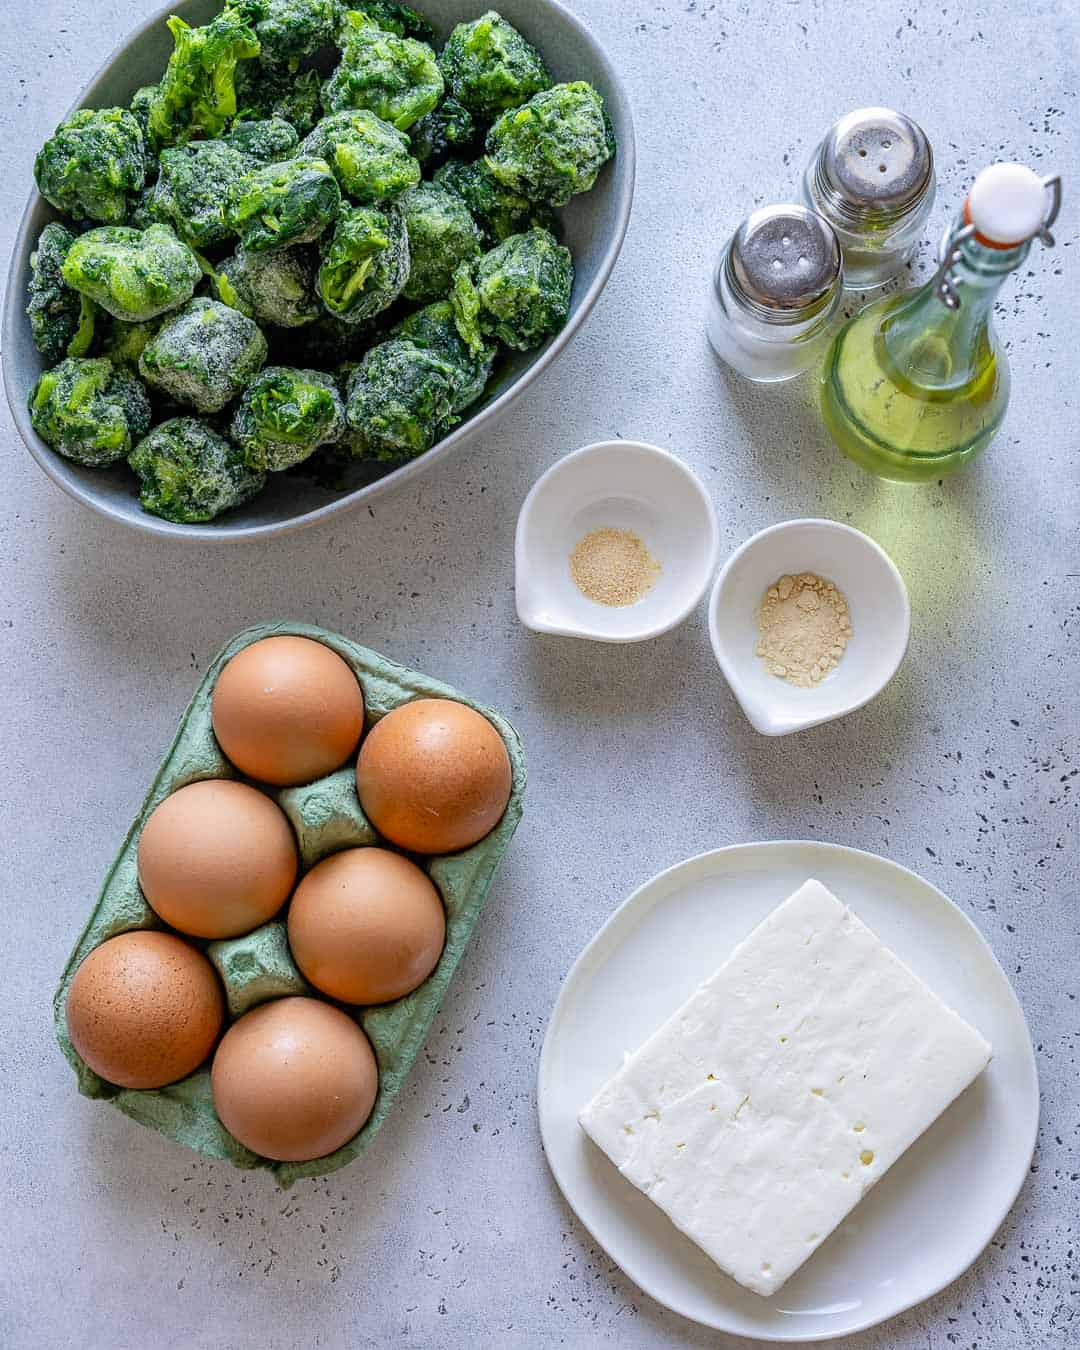 Ingredients for spinach feta baked egg cups on counter